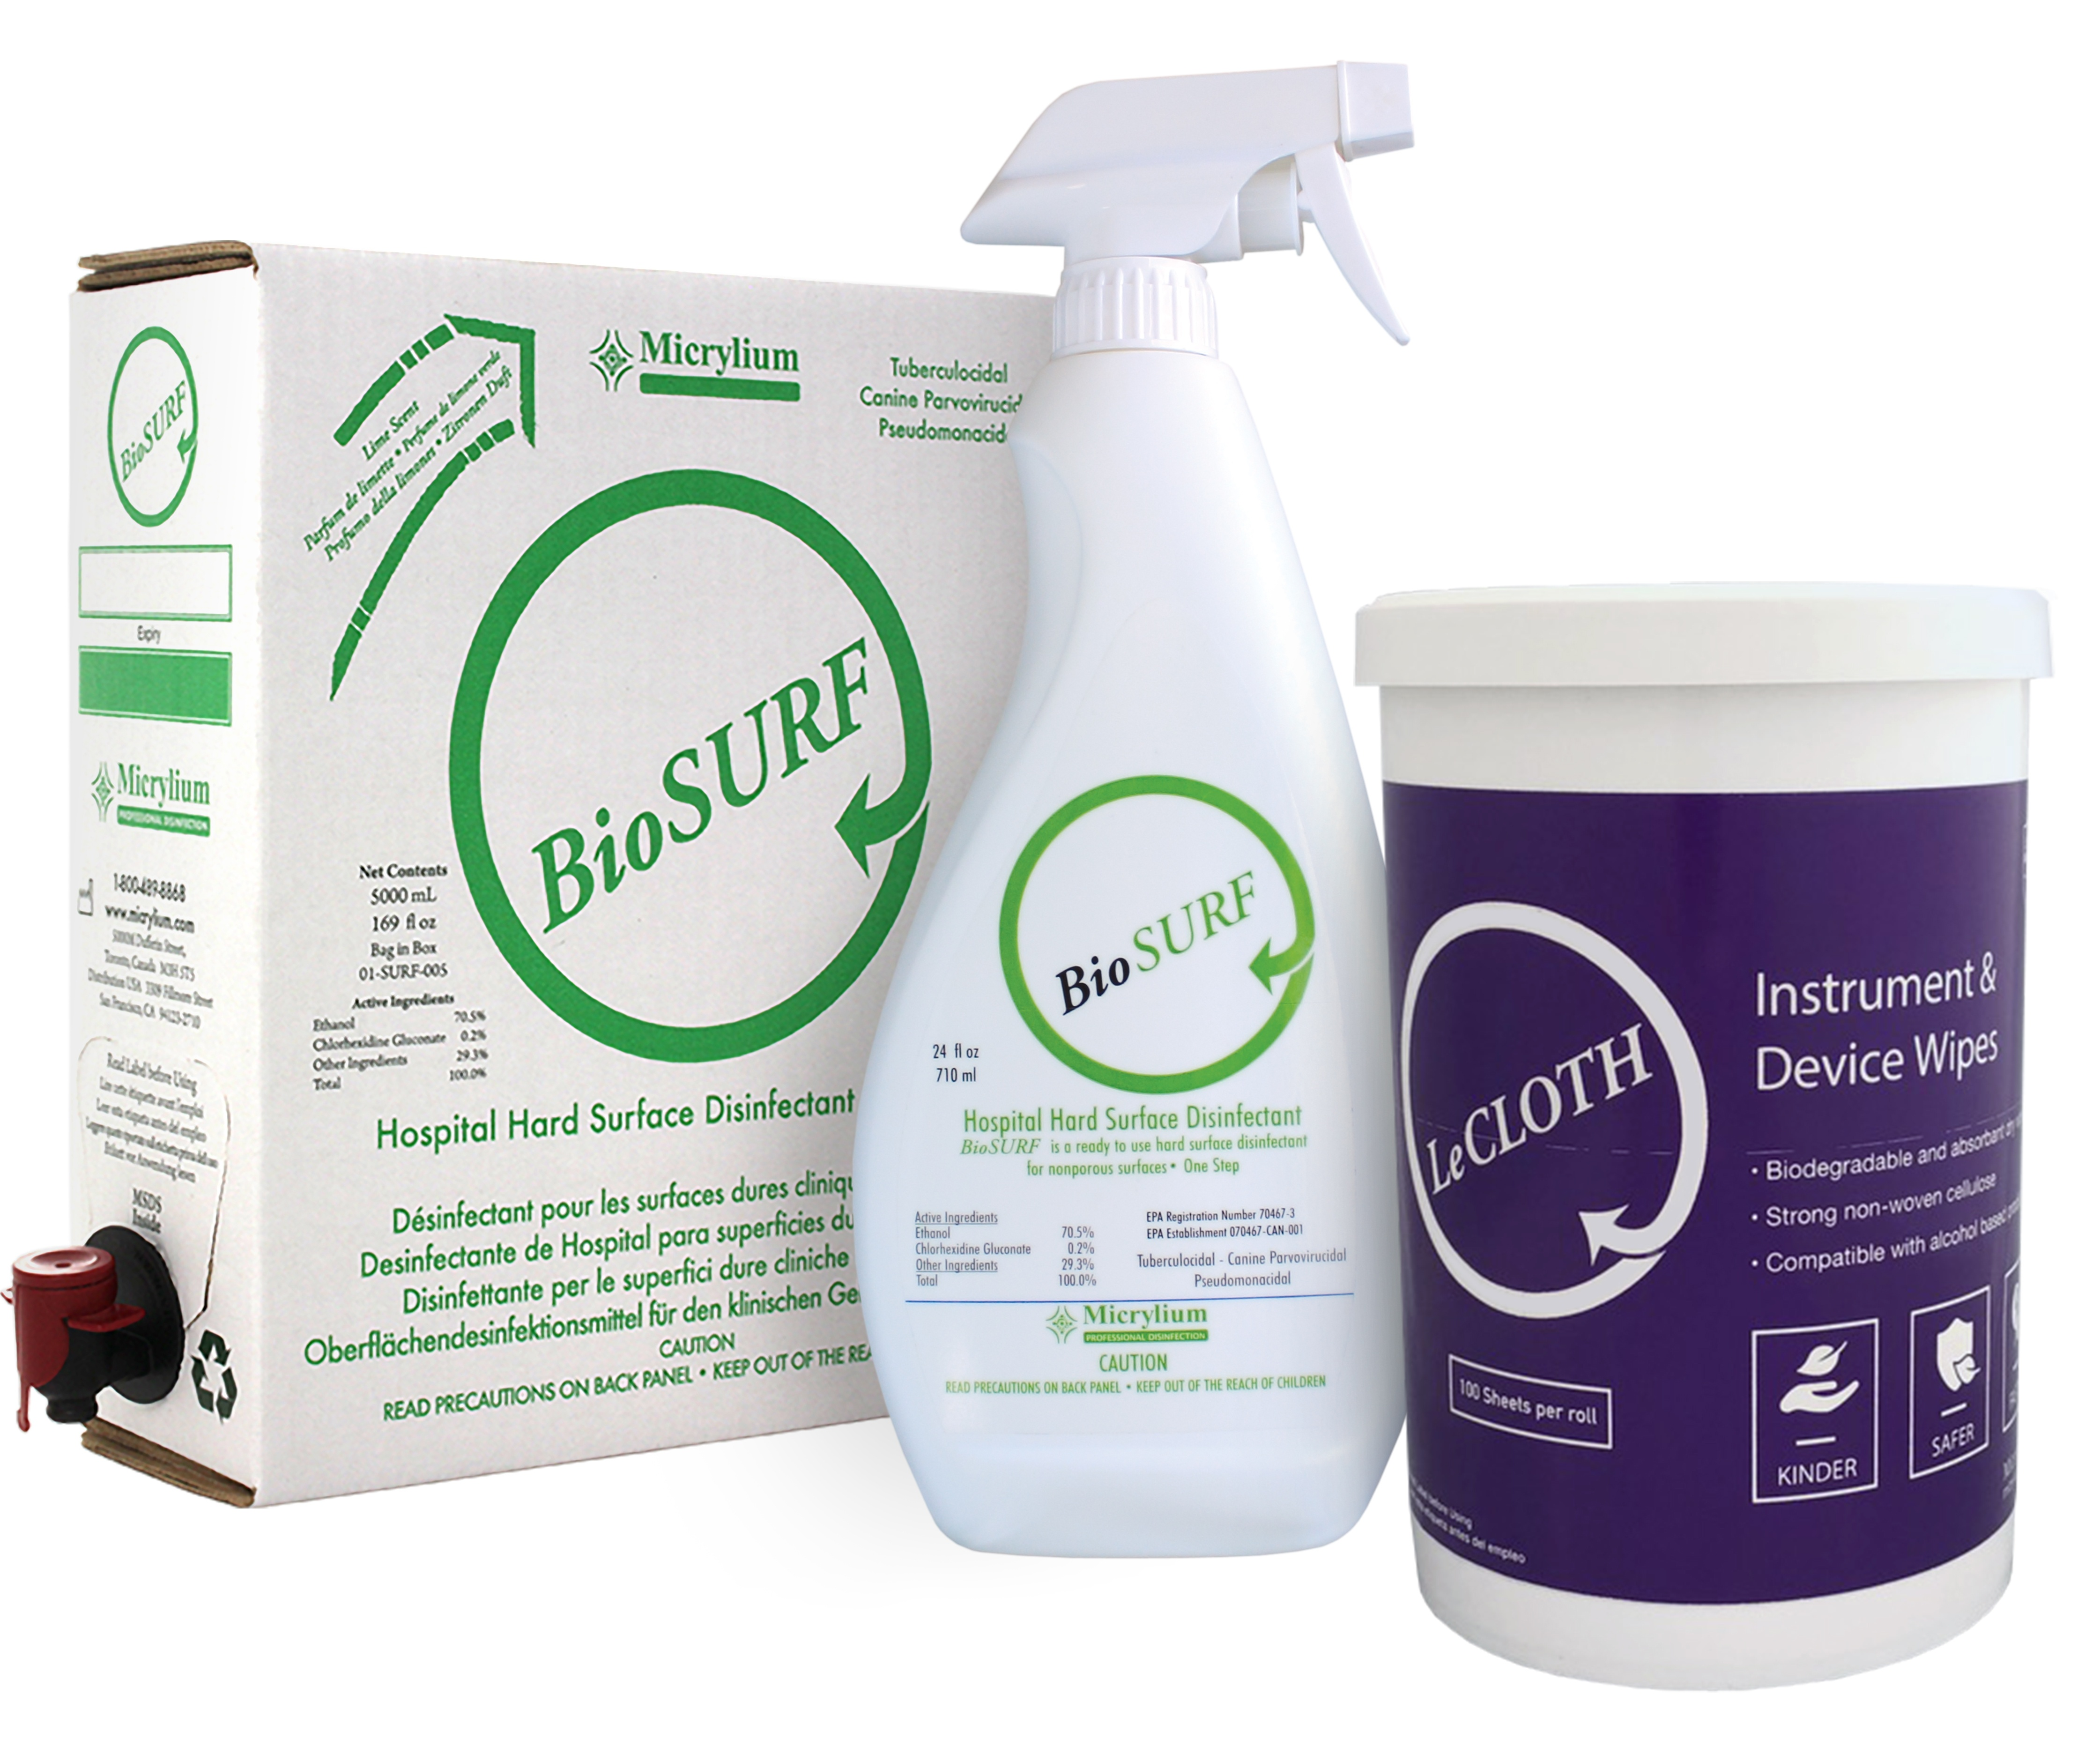 Biosurf surface disinfectant